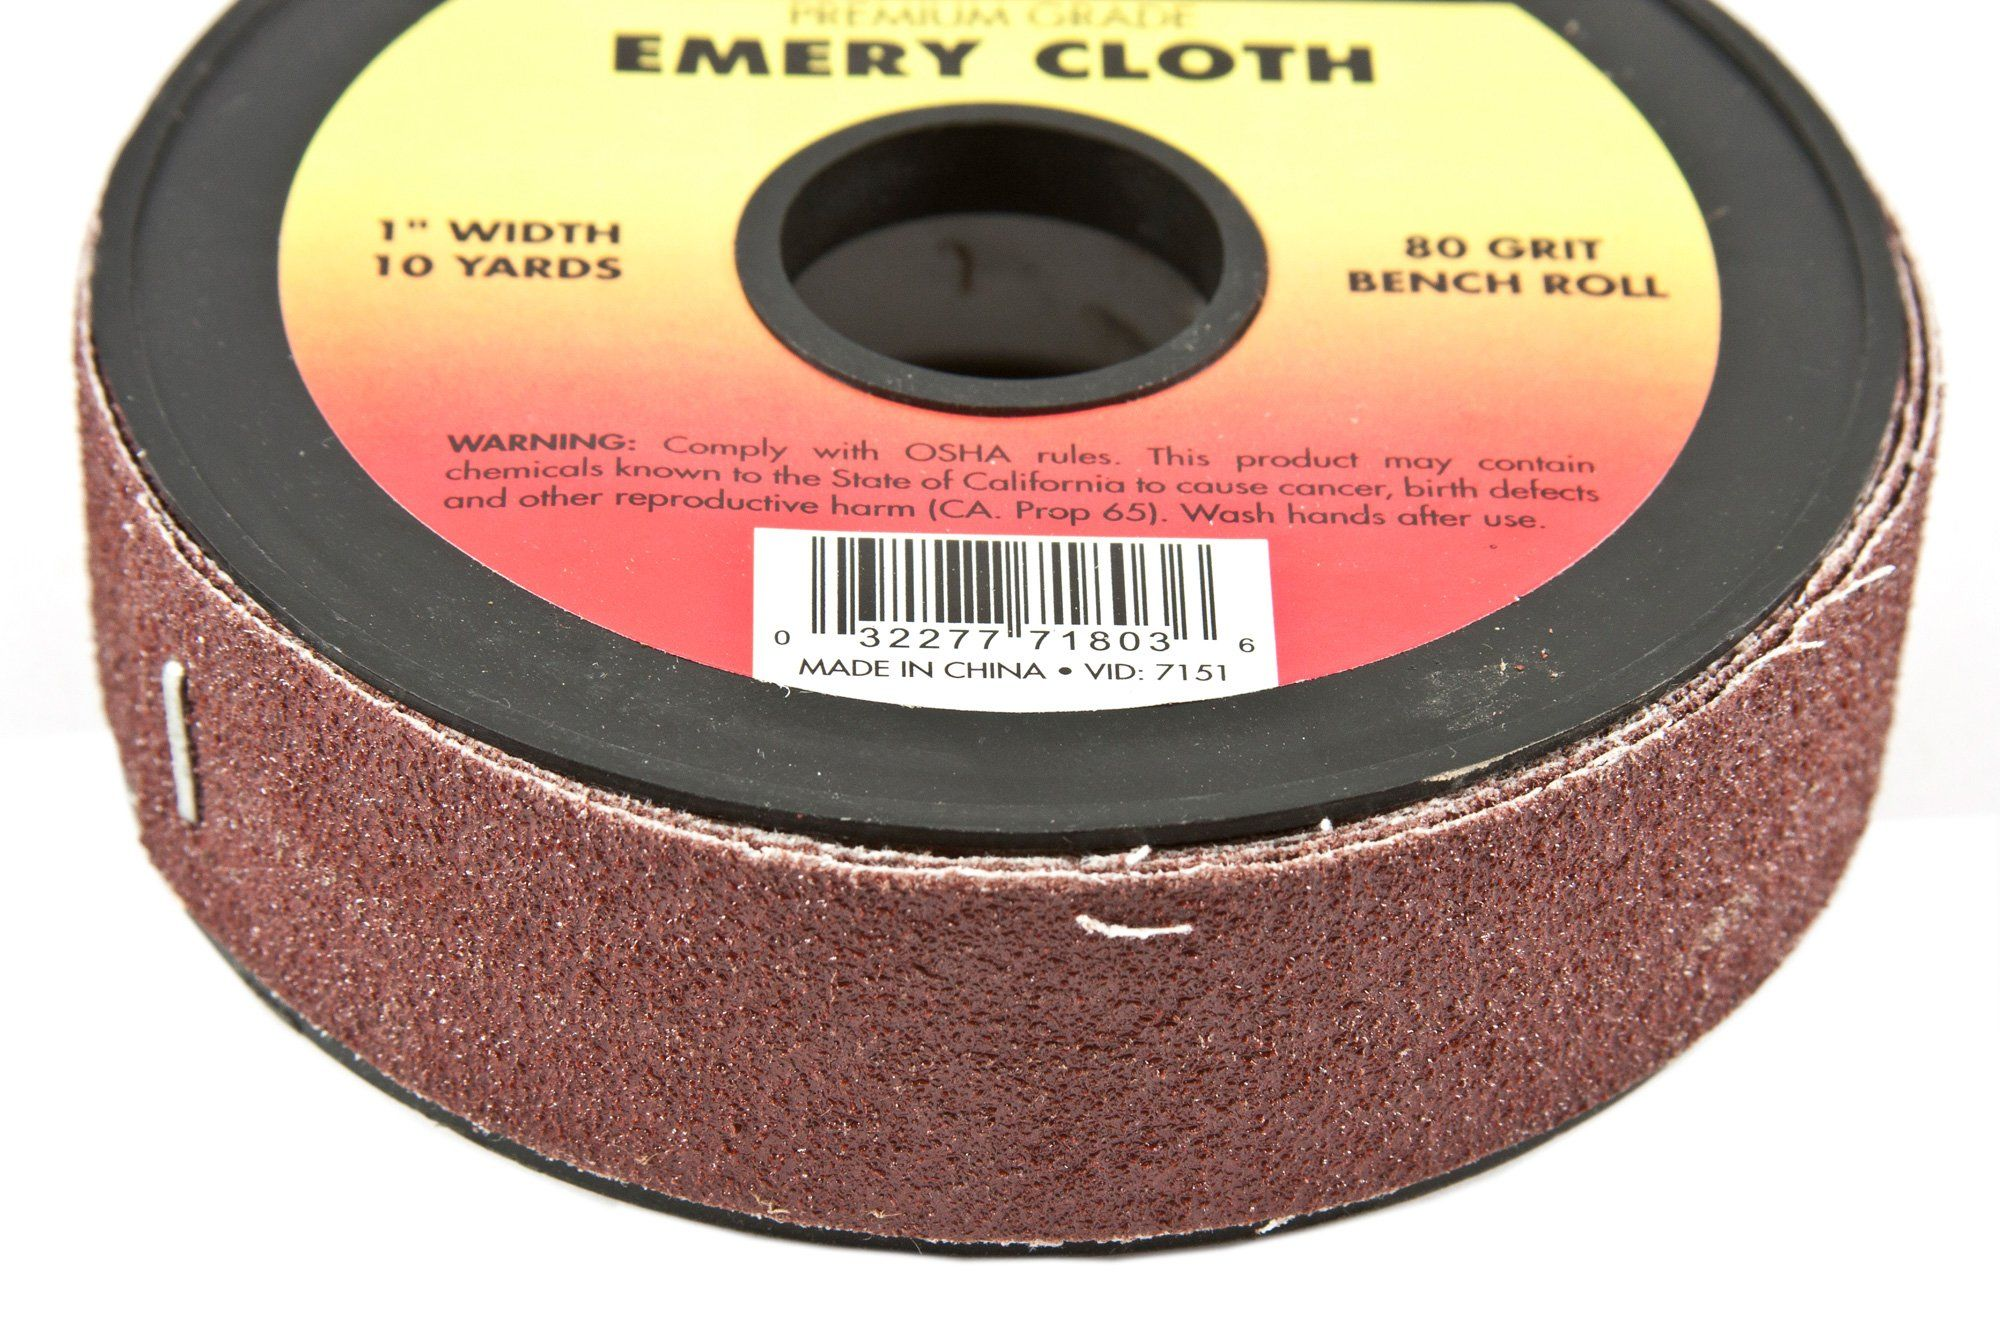 Forney 71803 Emery Cloth 80grit 1inchby10yard Bench Roll Check Out This Great Product It Is Amazon Affiliate Link Homeimpro Yard Benches 10 Things Forney